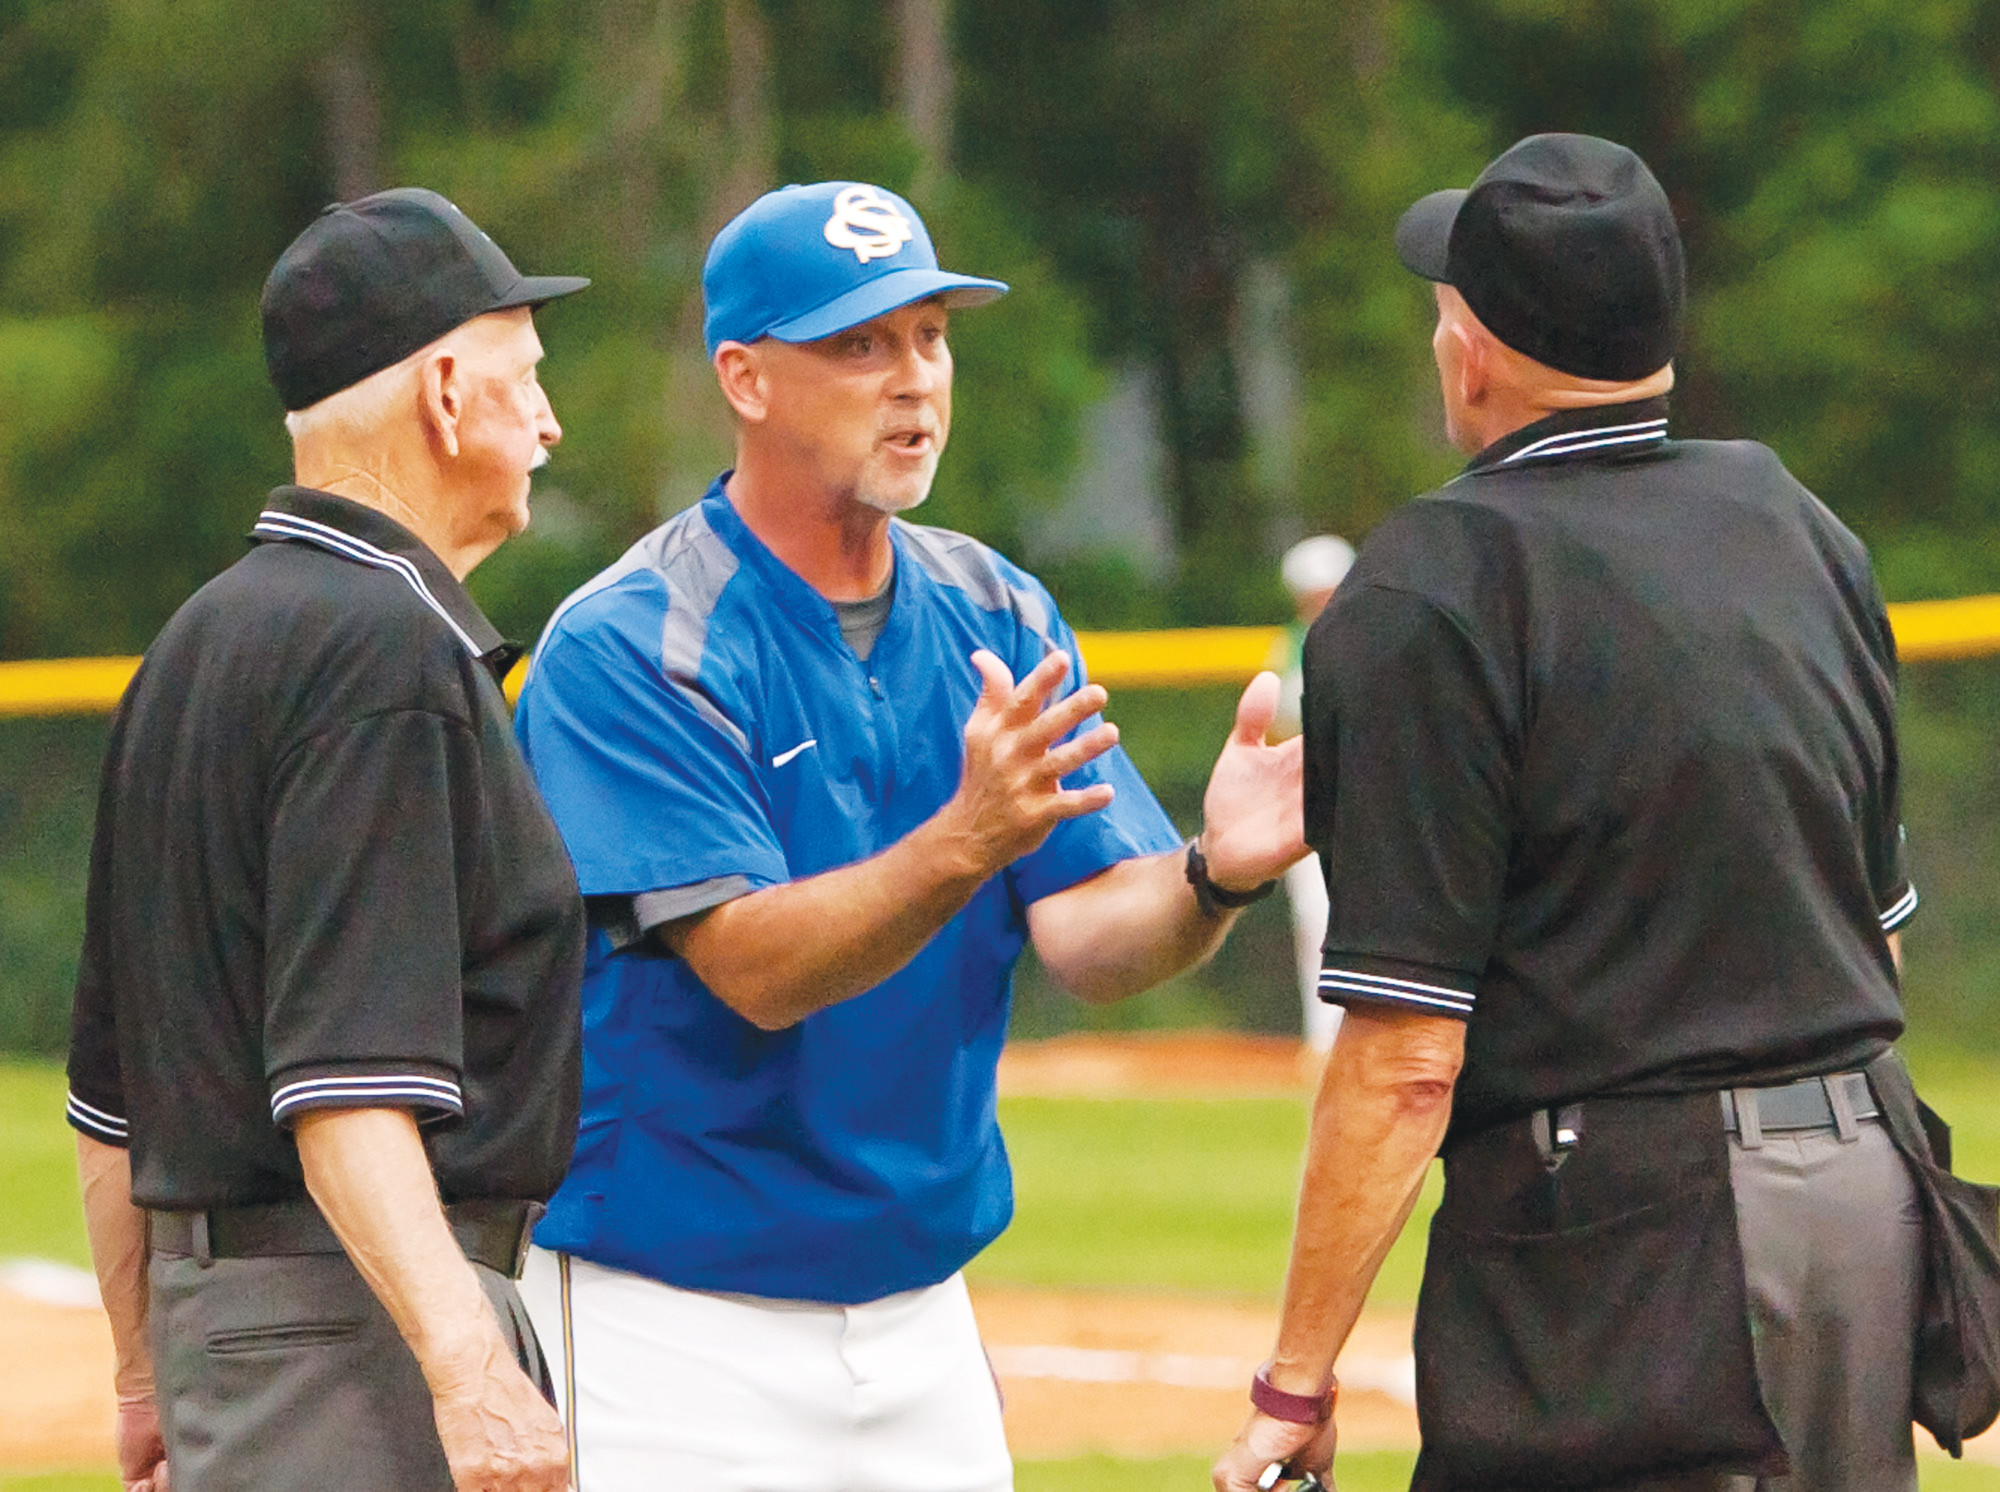 Sumter High School baseball head coach Brooks Shumake, center, picked up his 400th career victory on Friday as the Gamecocks beat Conway 3-2 in eight innings at Gamecock Field.